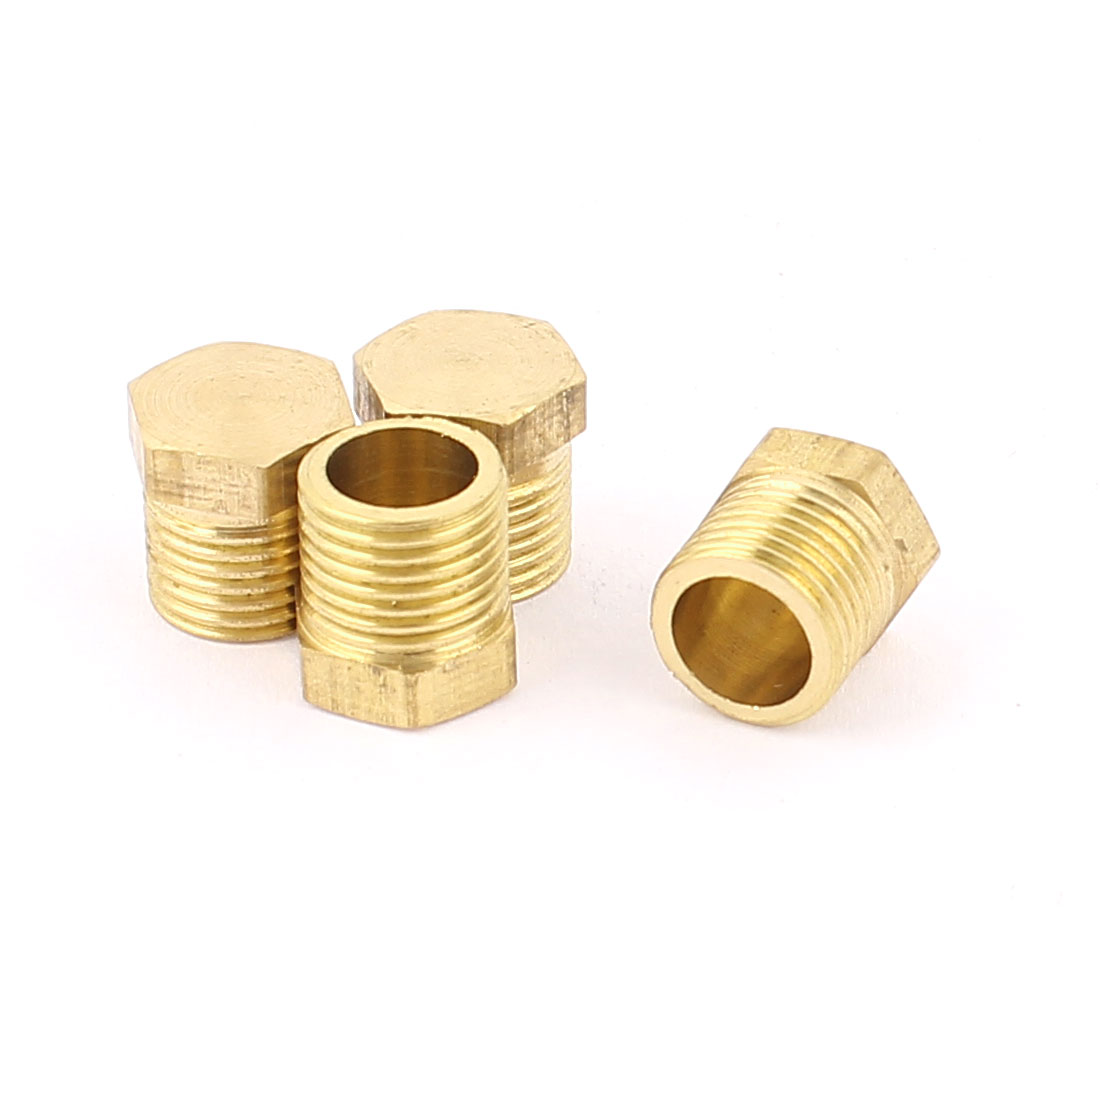 1/8BSP Male Thread Copper Hex Head Pipe Connector Coupling Adapter 4pcs